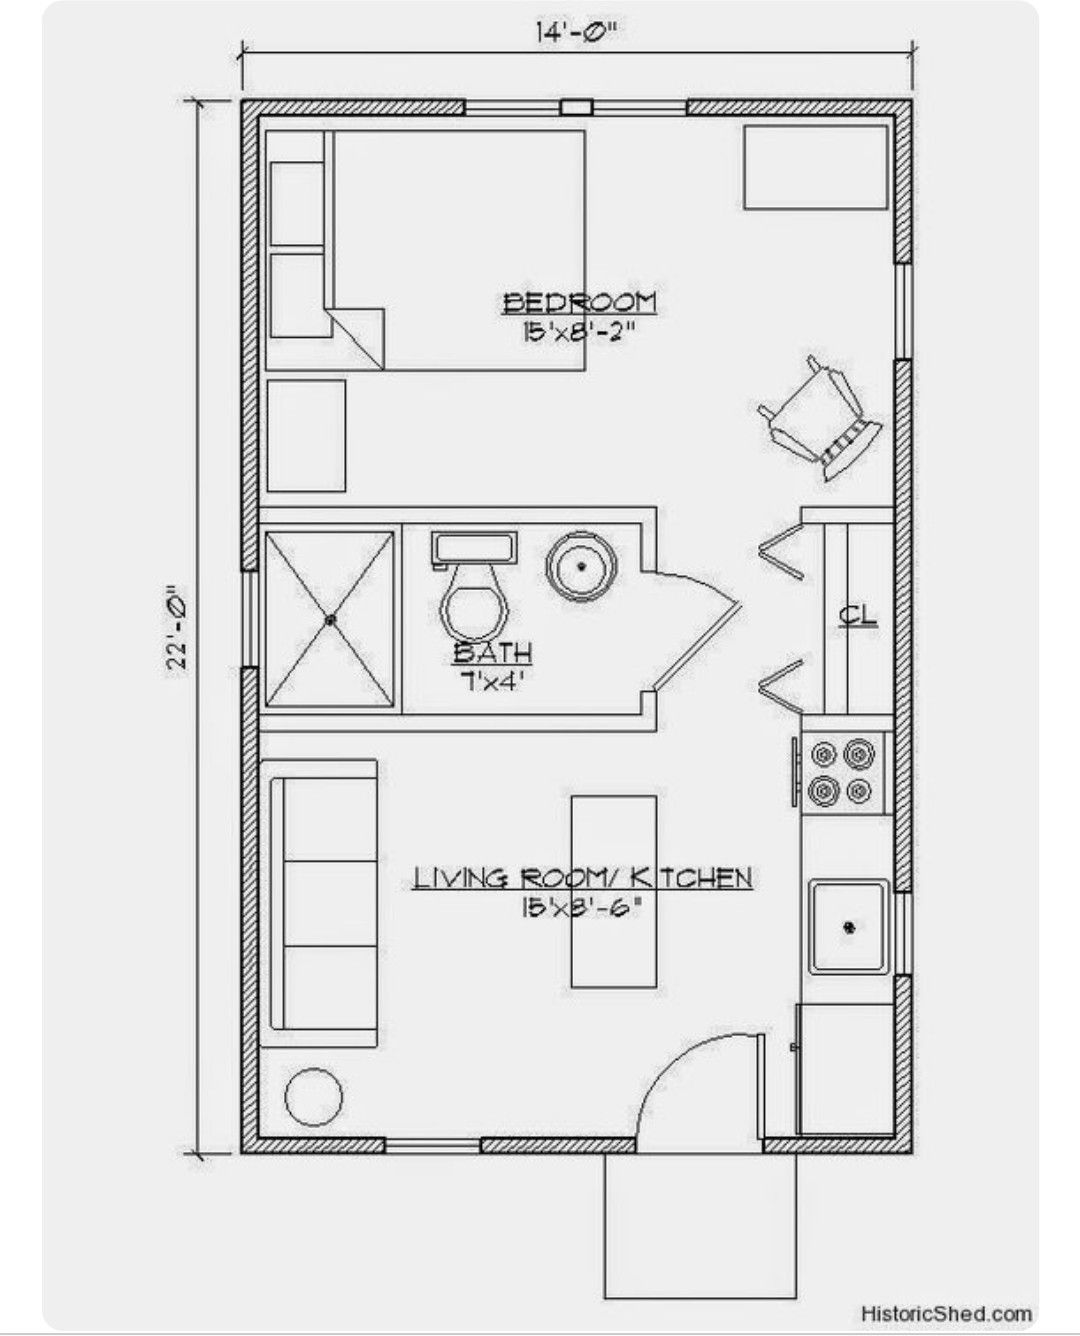 Small House 14x22 1 Bedroom Ecohouselayout Tiny House Floor Plans Bedroom House Plans Tiny House Plans